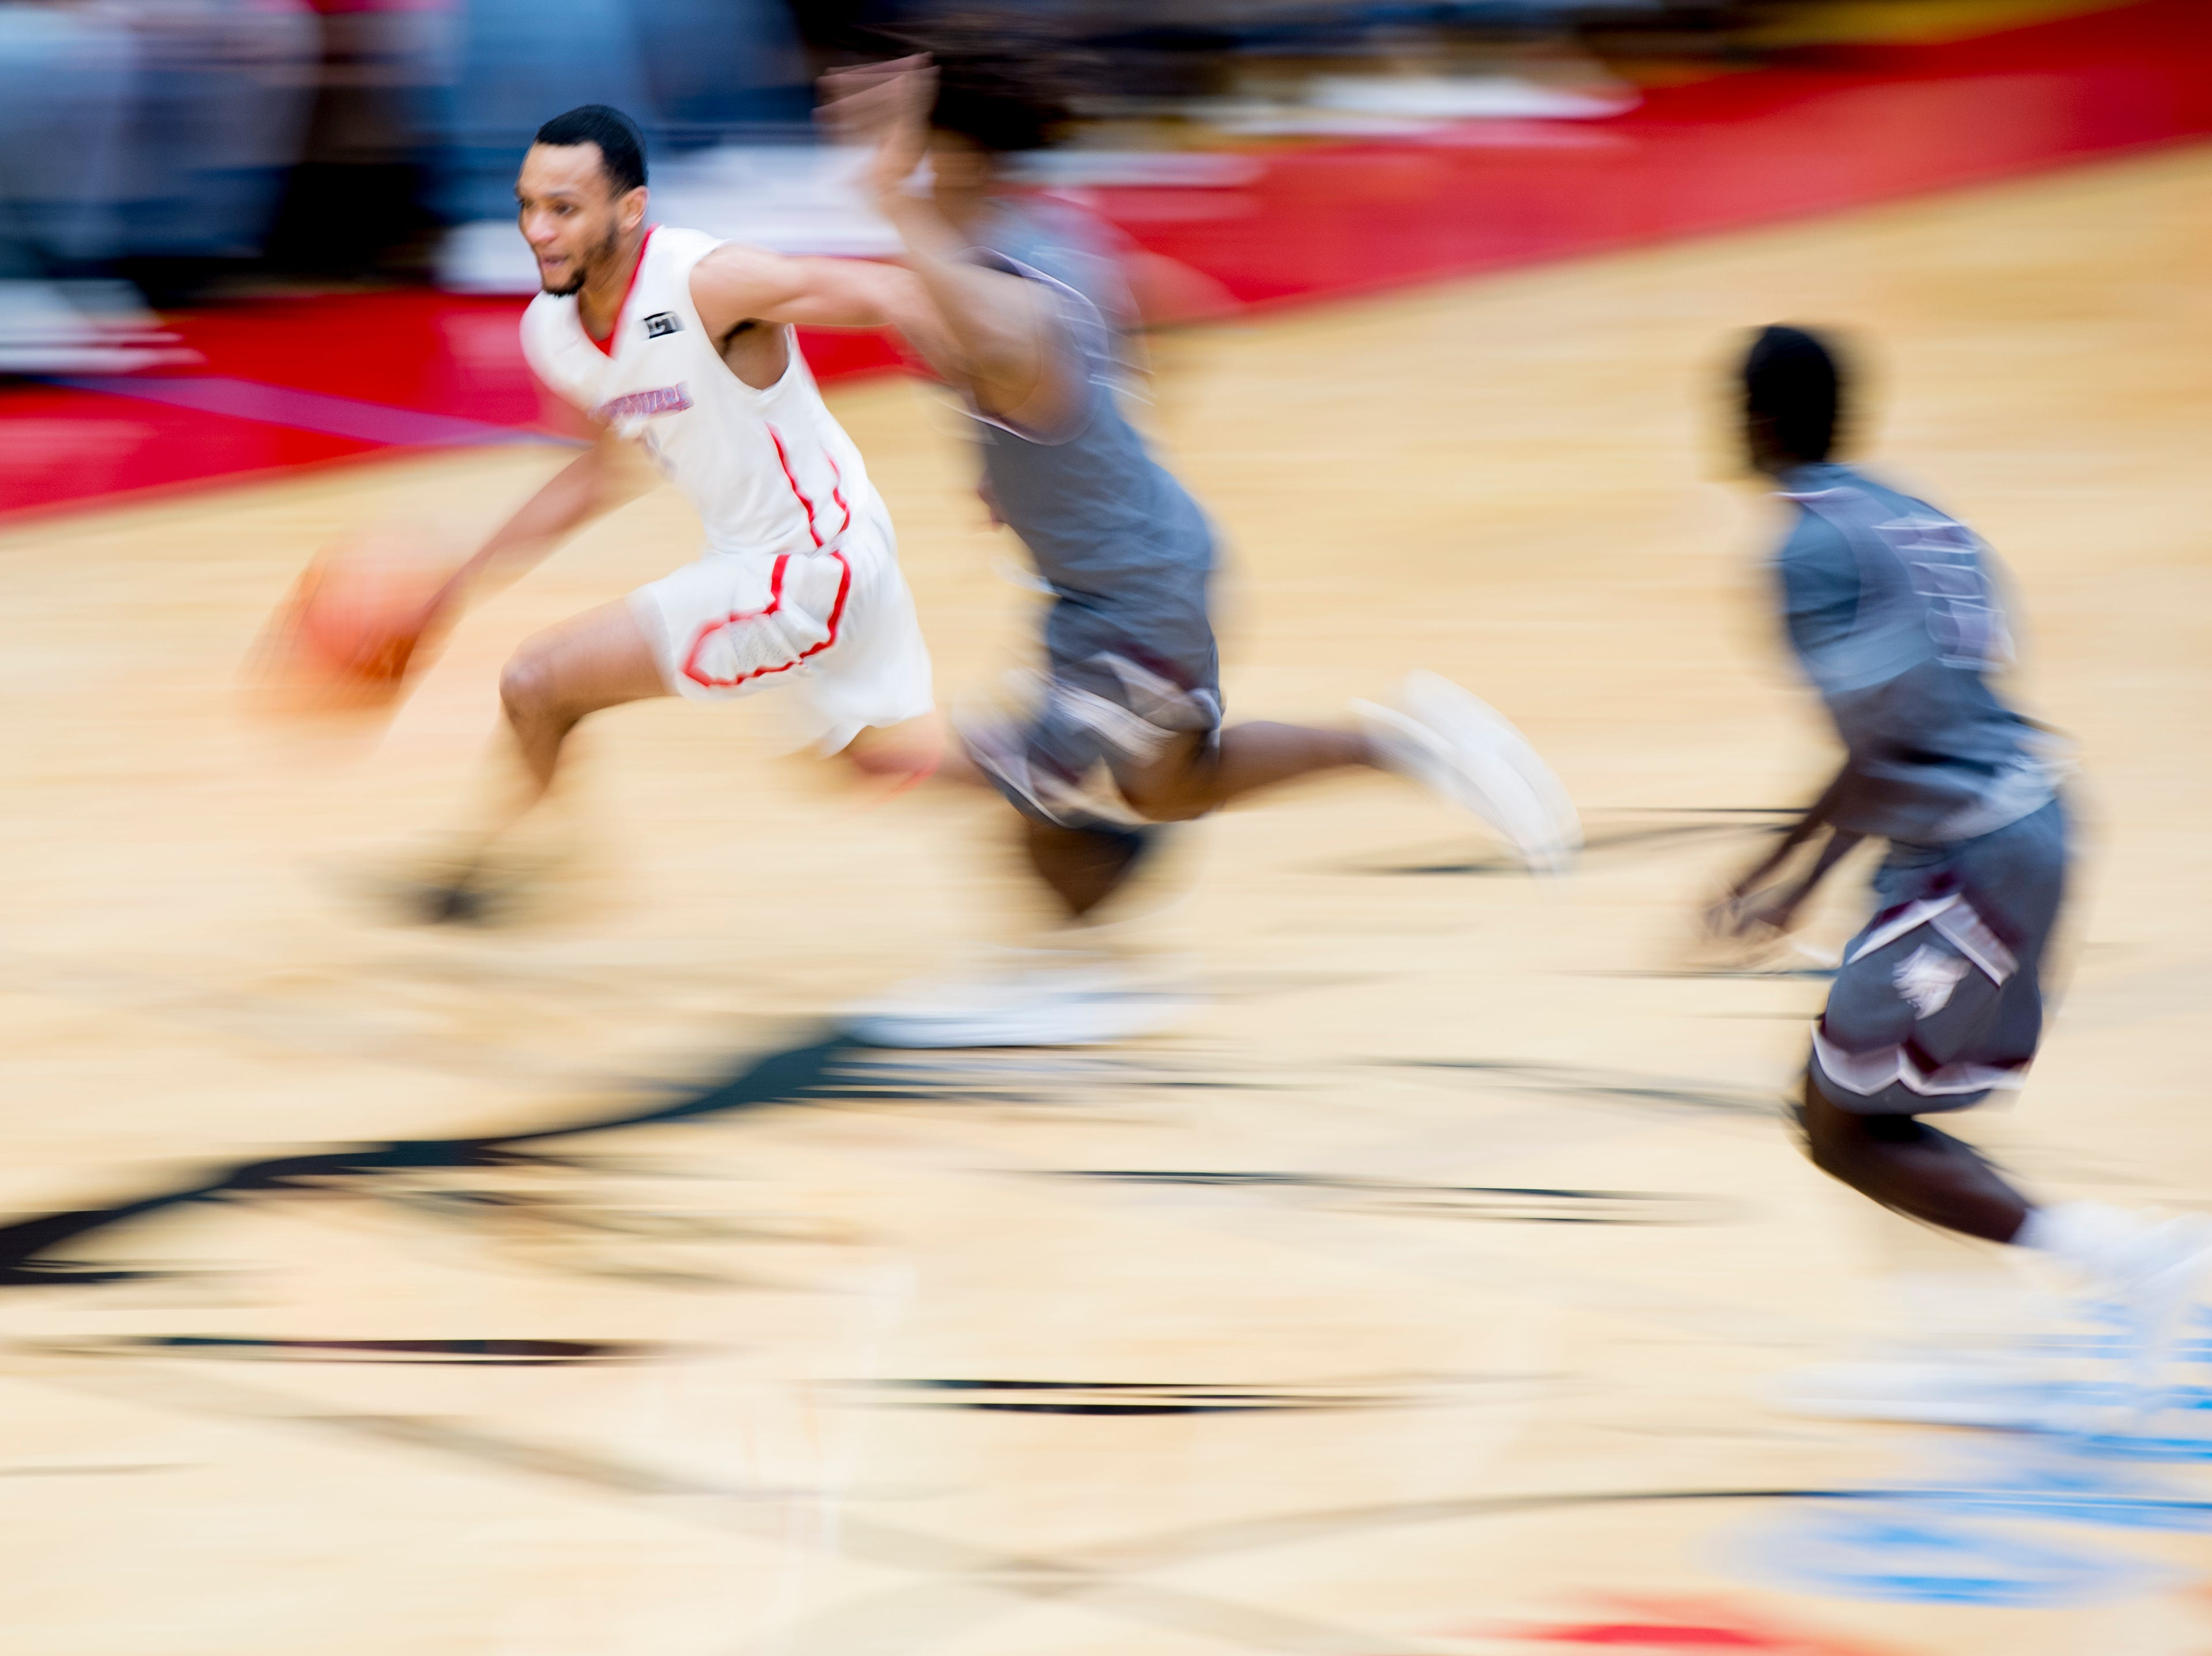 Austin-East's Ronney Pierson (5) dribbles down the court during a game between Austin-East and Alcoa at Austin-East High School in Knoxville, Tennessee on Friday, January 18, 2019.